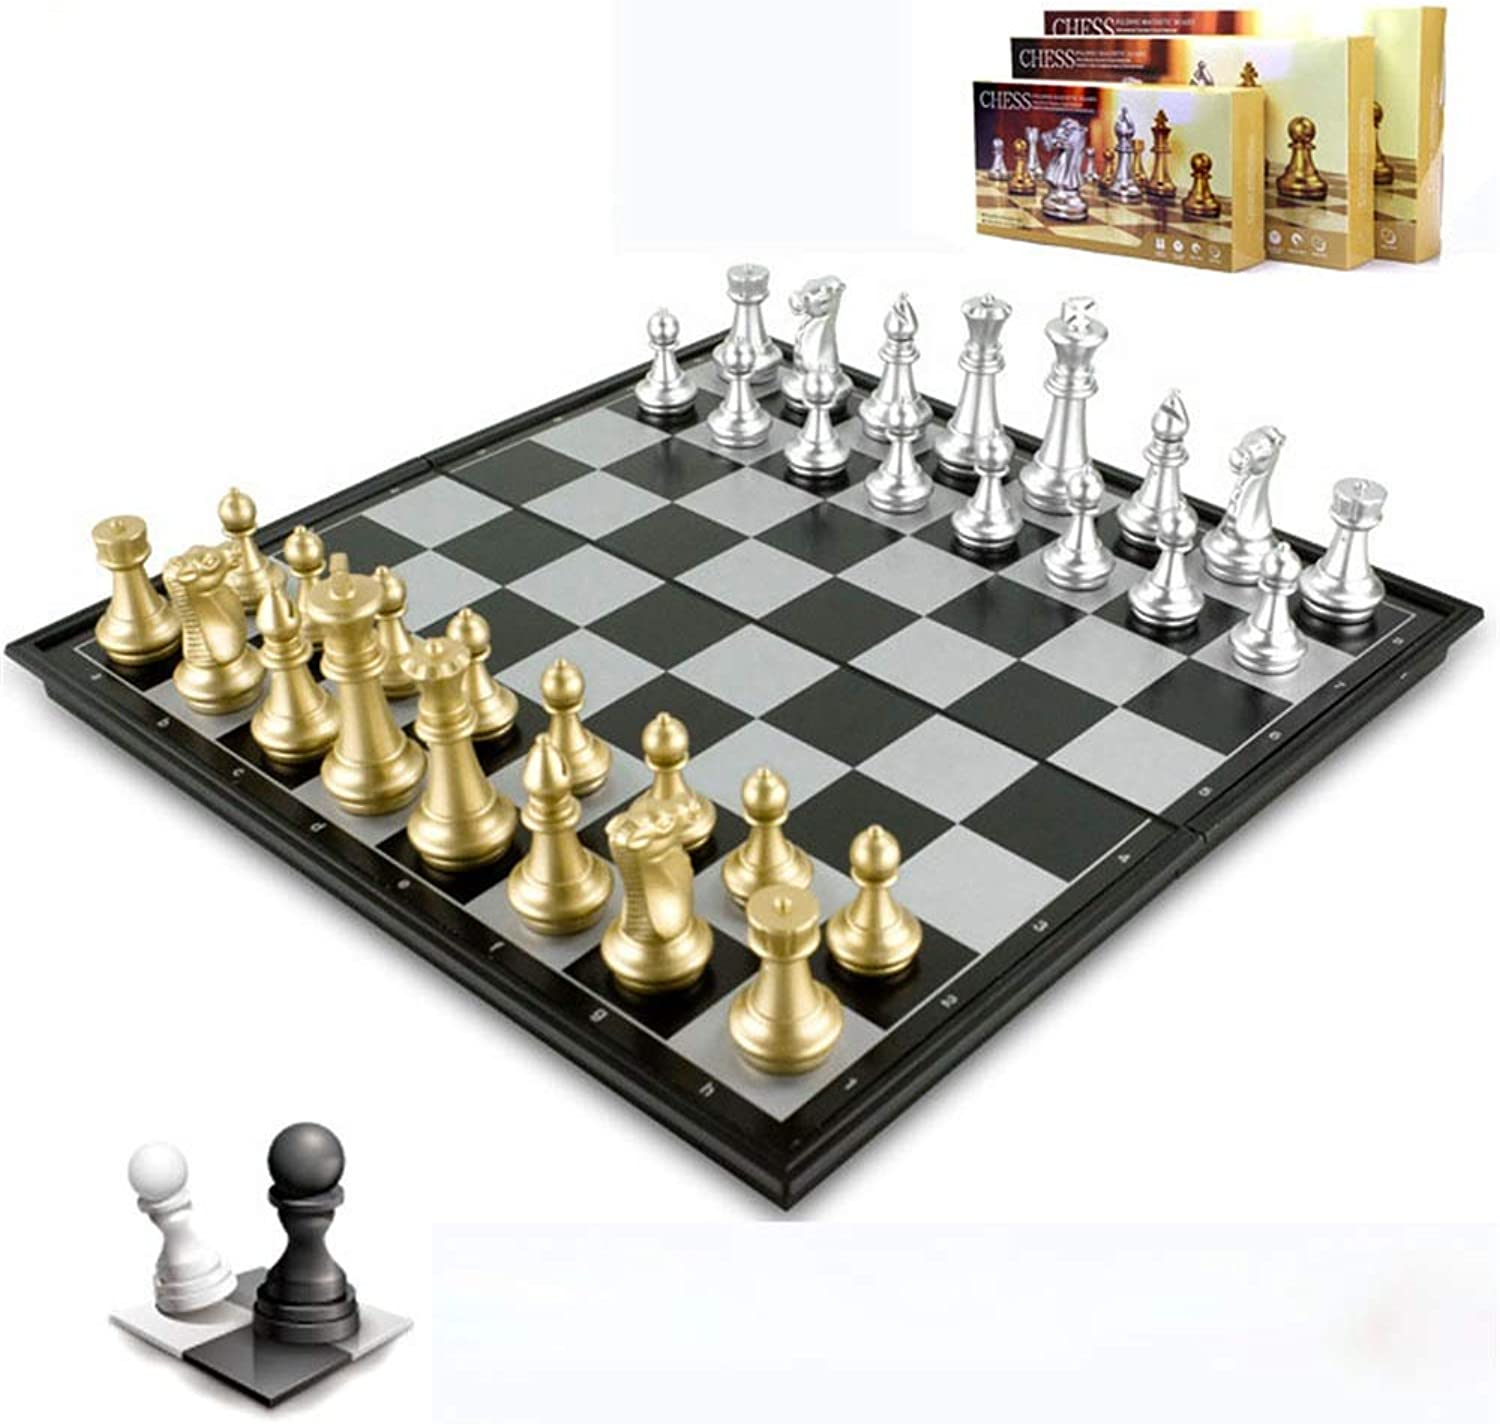 International Chess Set Board Game Magnetic Chess Checkers Set Portable golden Silver Folding Chess Board Game Perfect Educational Learning Toys For Chess Club Travel Sized Storage Bags For Kids And A